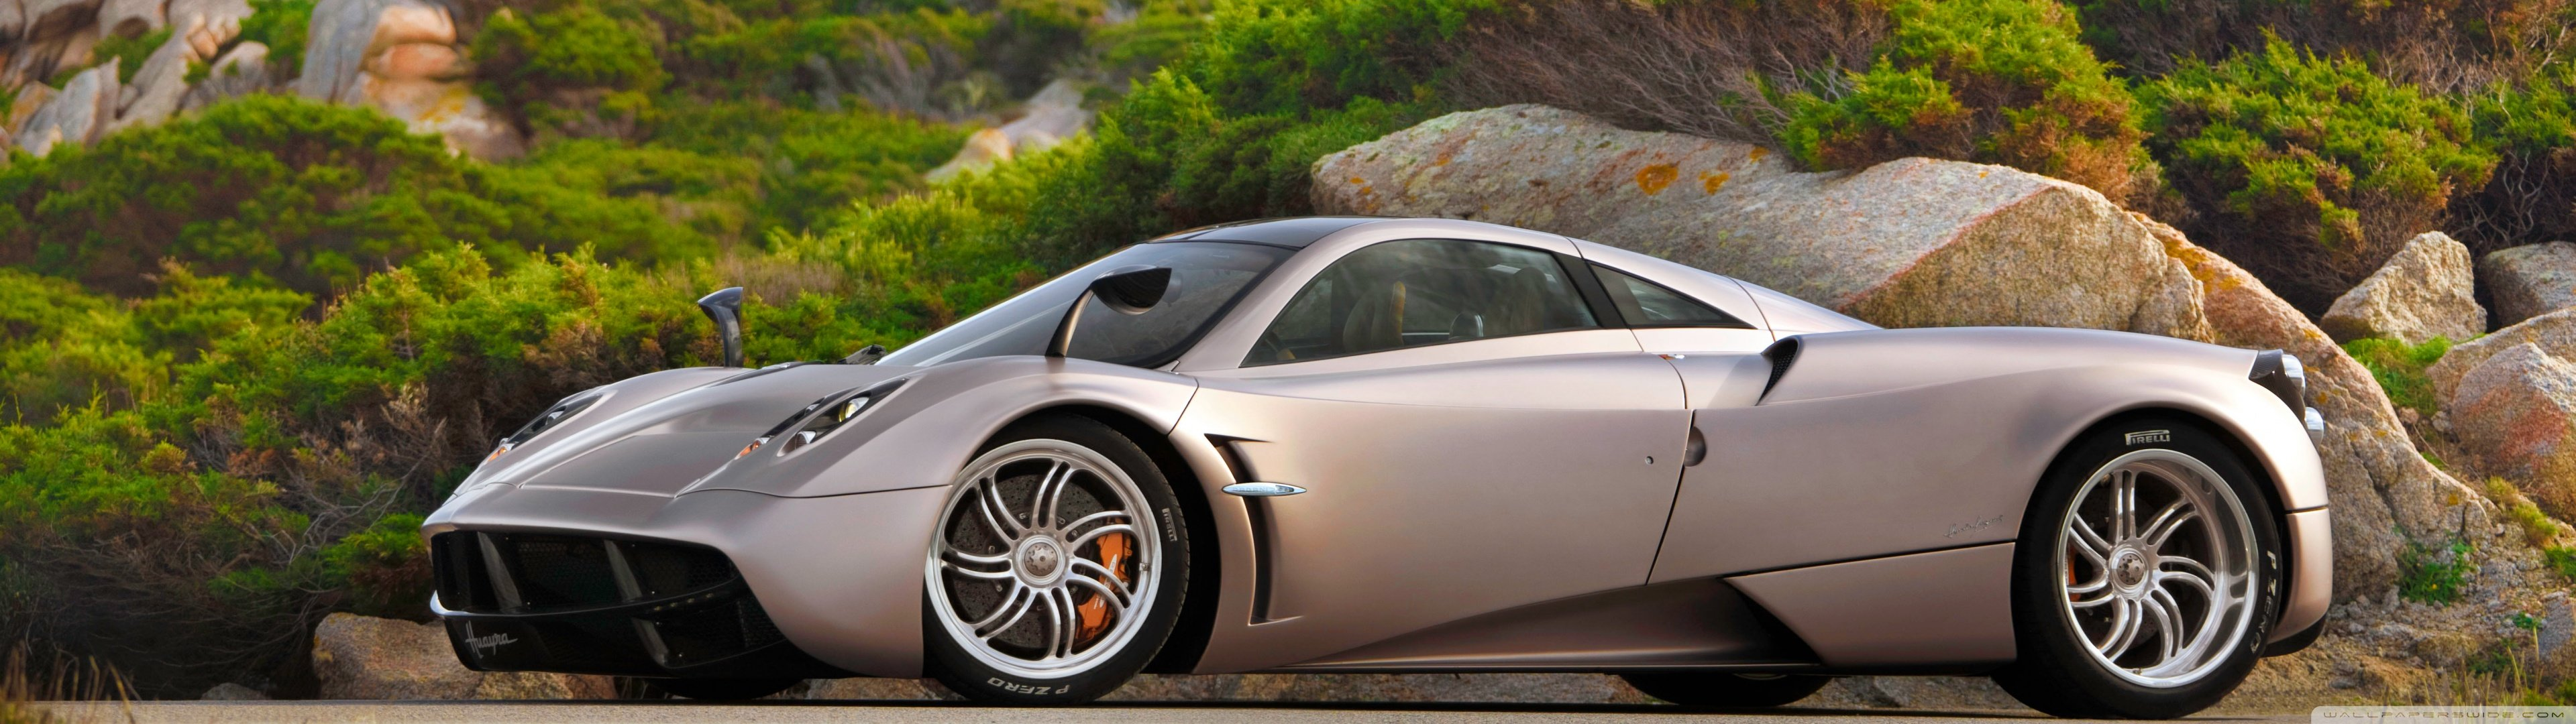 Best Pagani Huayra Background ID:160200 For High Resolution Dual Monitor  3840x1080 Desktop